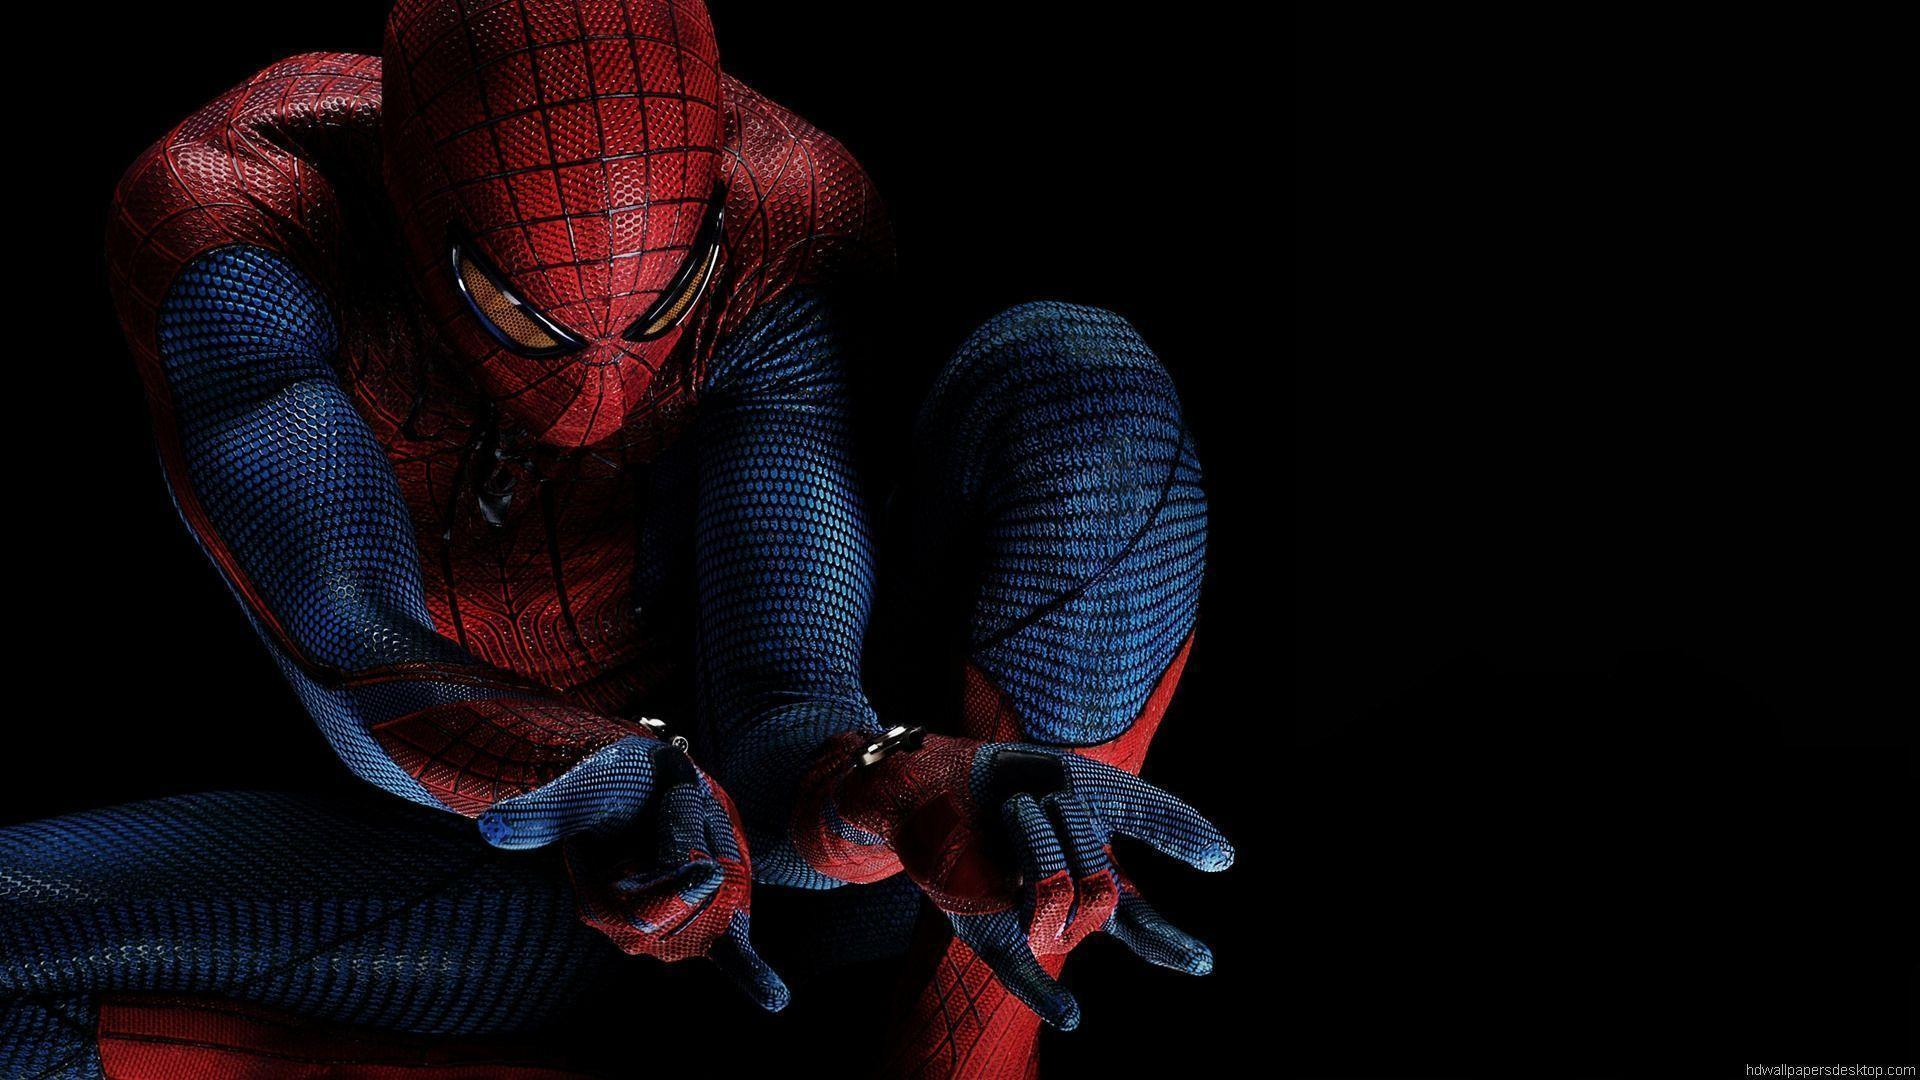 Spiderman HD Movies Wallpapers 1080p HD Wallpapers : High